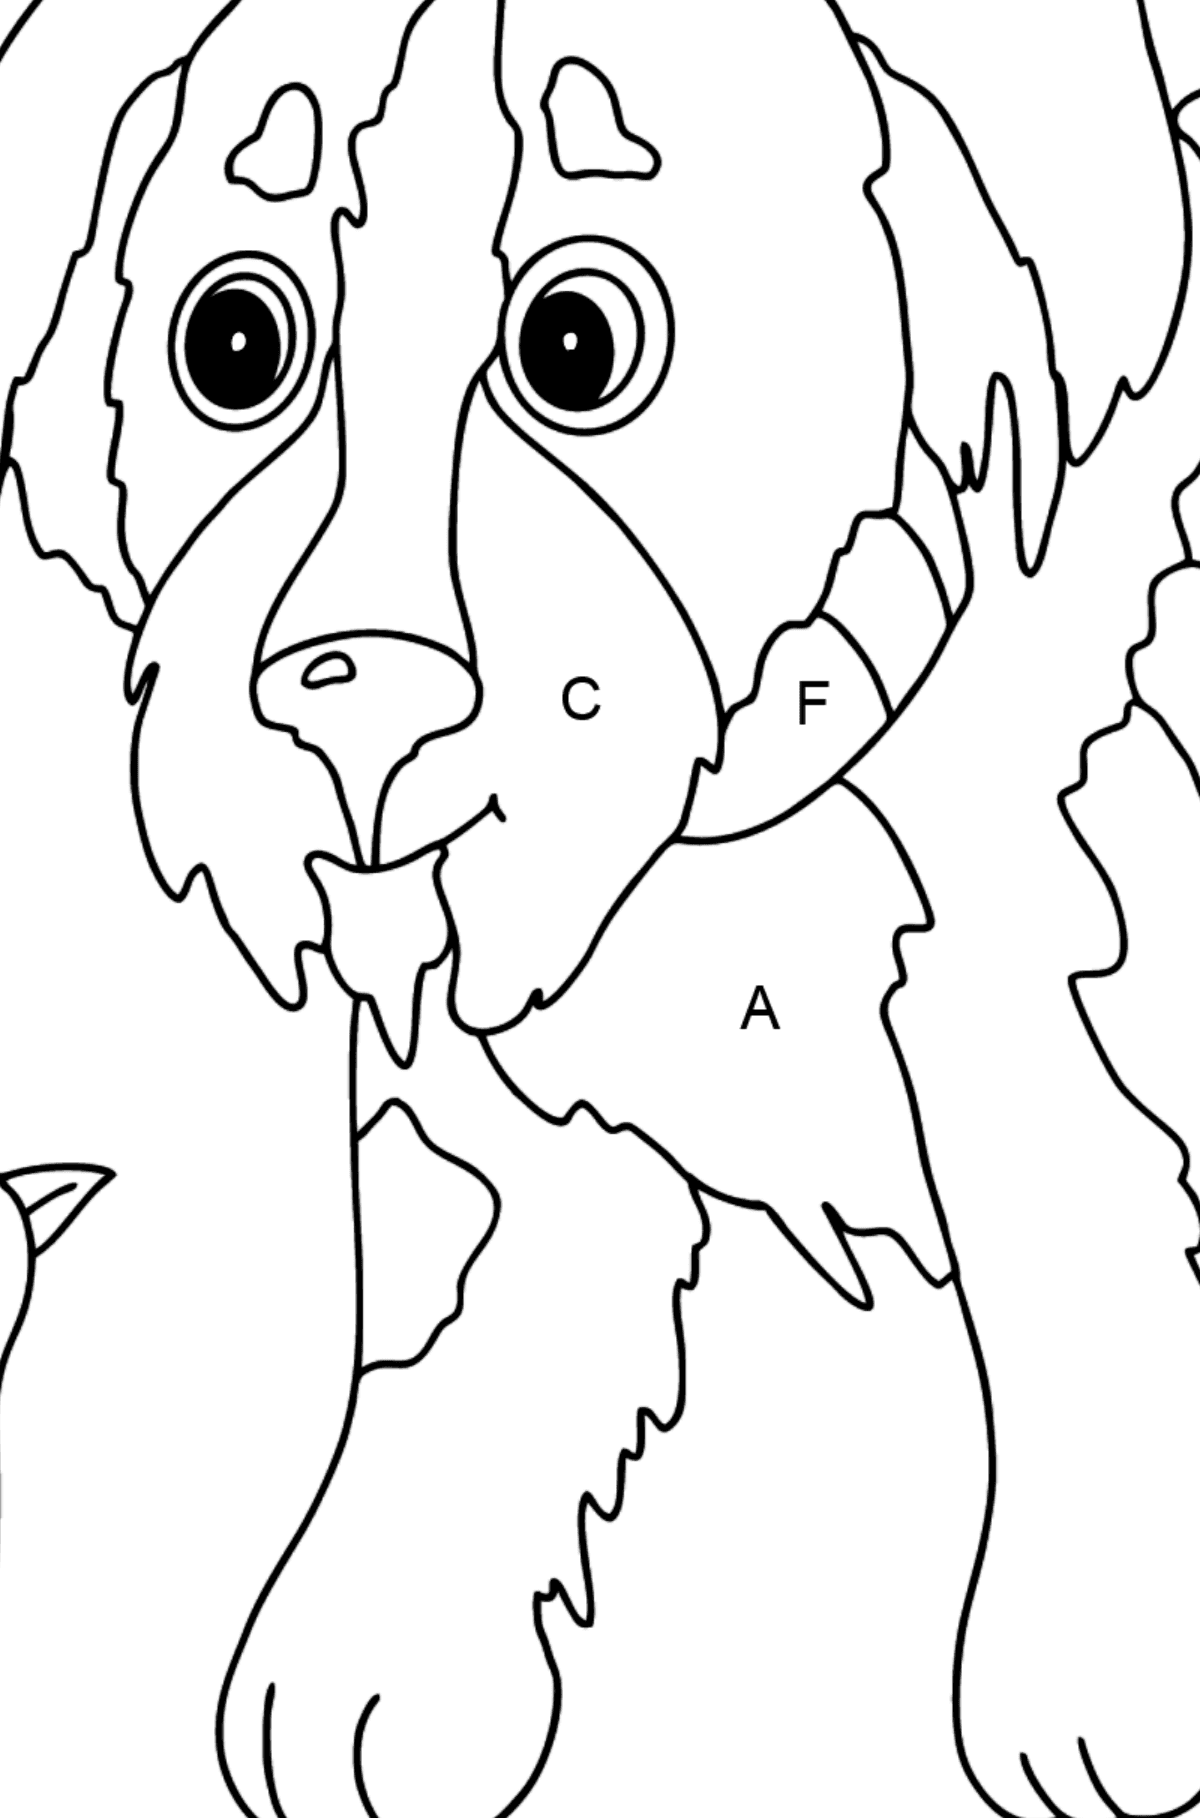 Coloring Page - A Dog is Talking to a Bird - Coloring by Letters for Kids